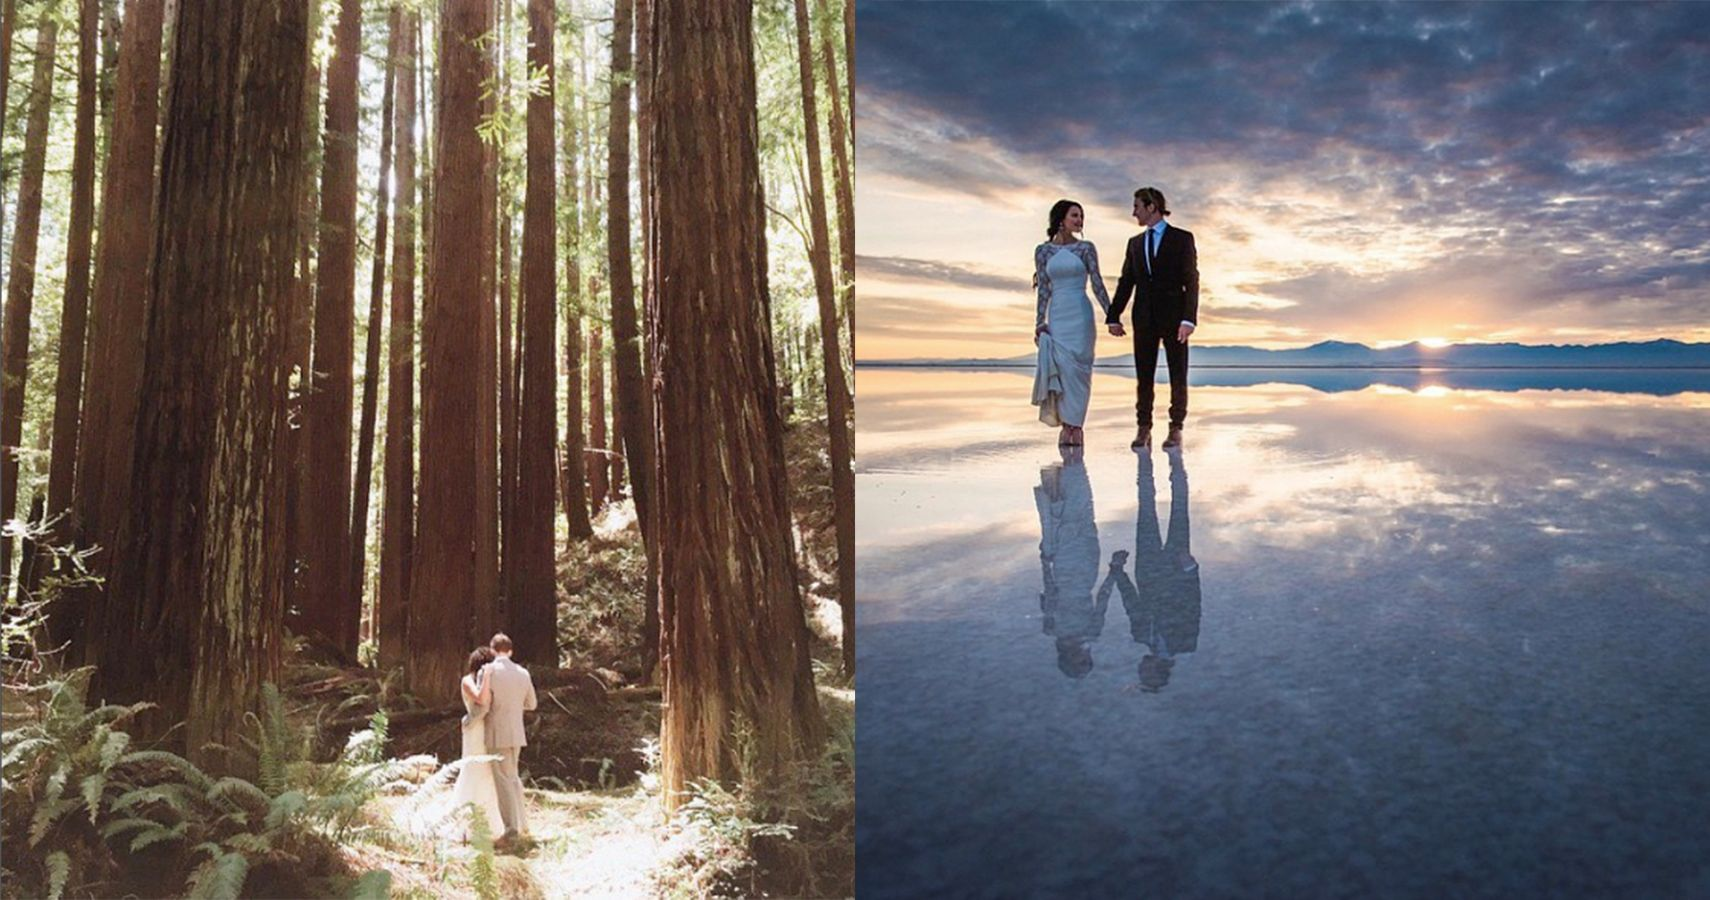 15 Destination Weddings That Will Give You Serious Wanderlust